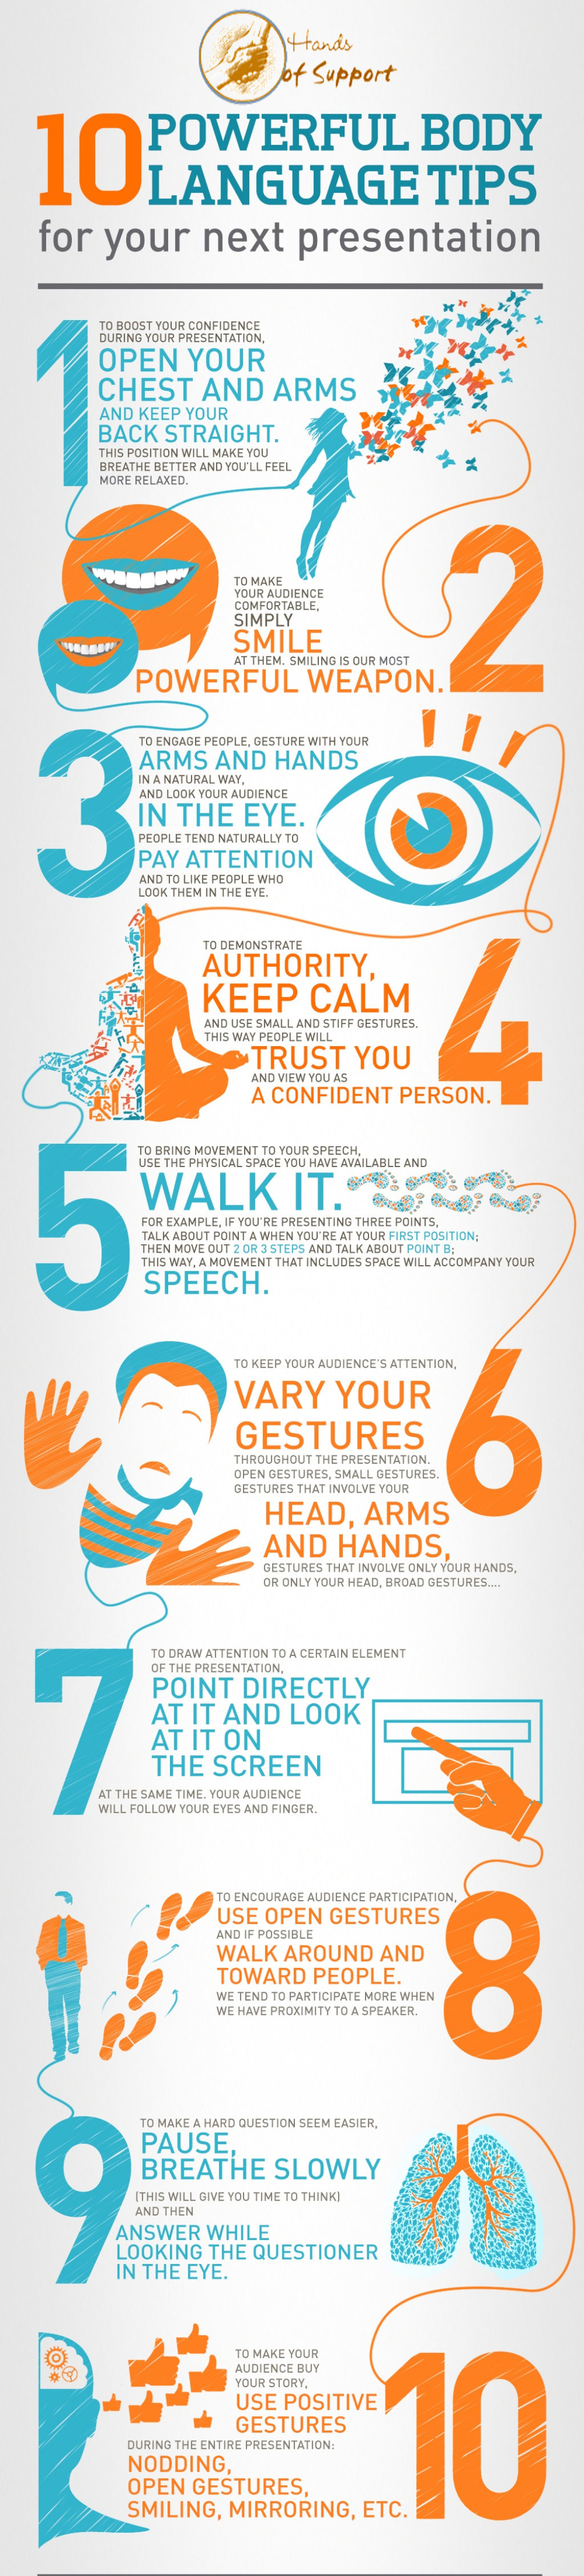 10 Powerful Body Language Tips for your next presentation. 1-Open your chest and arms 2-Smile 3-Eye Contact 4-Keep Calm and Confident 5-Walk with it 6-Vary your Gestures 7-Point and Look at the the screen 8-Use open gestures and walk toward people 9-Pause, Breathe slowly 10-Use Positive Gestures